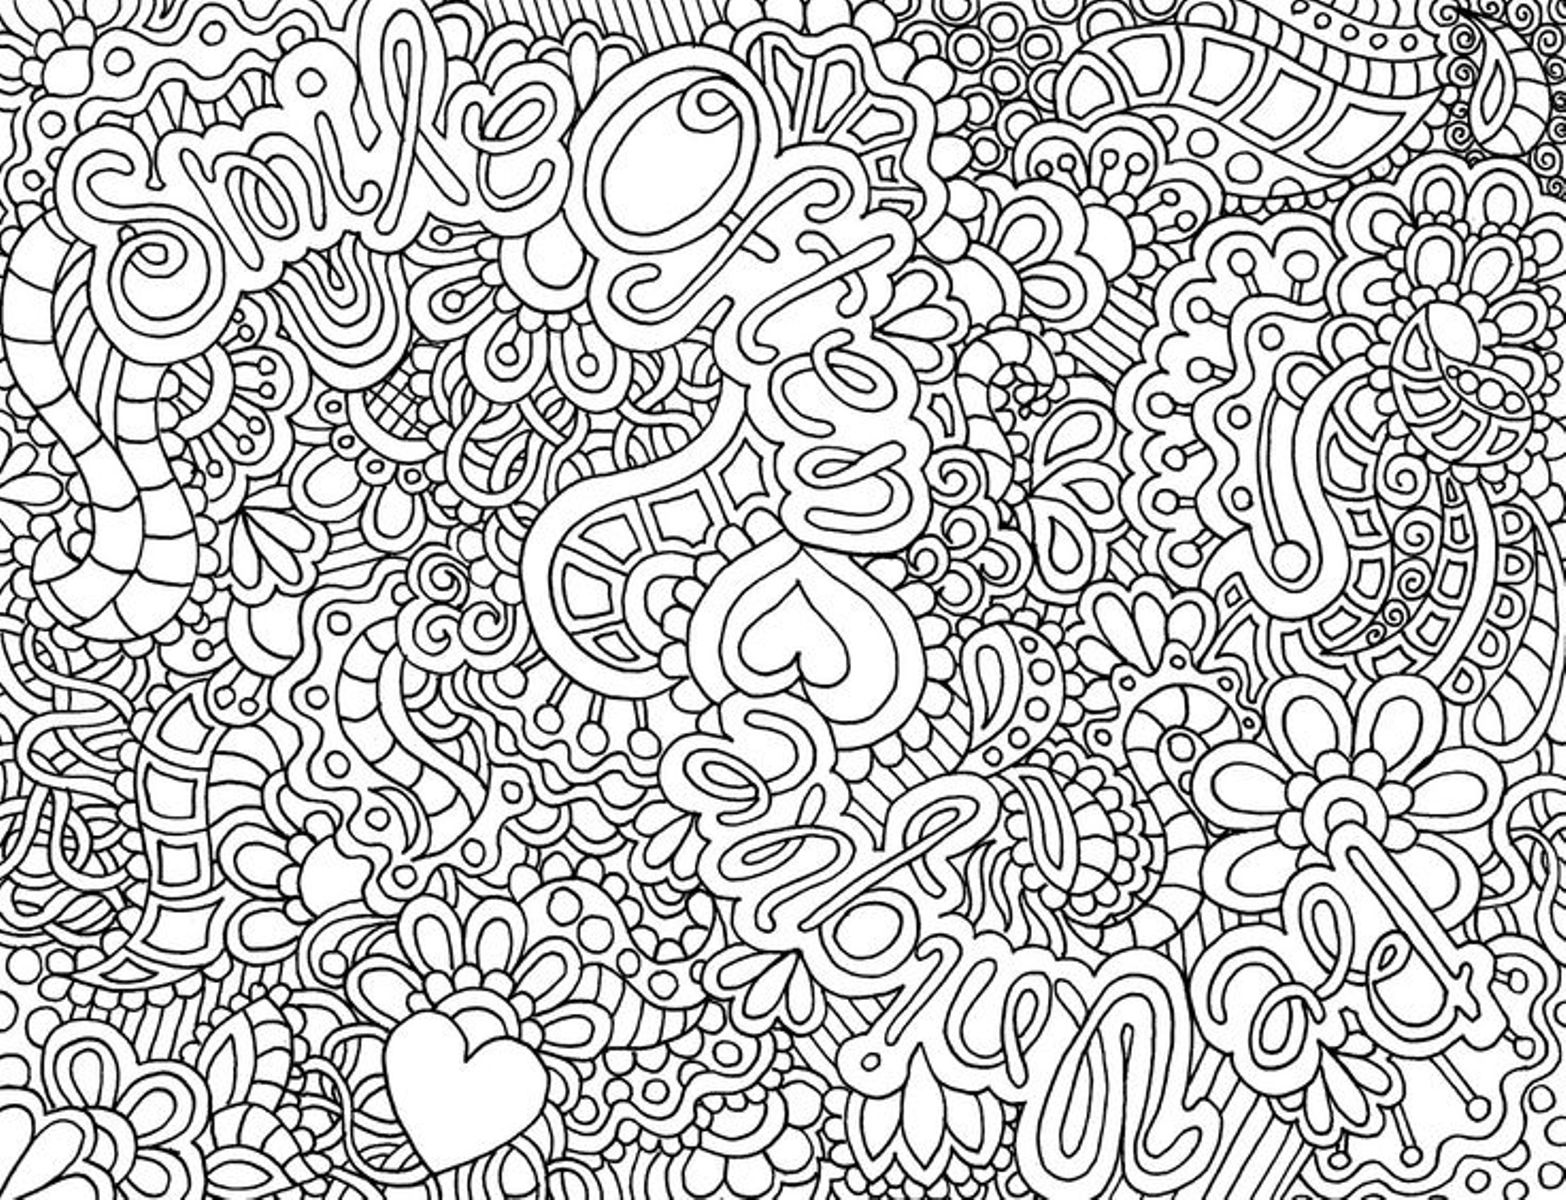 detailed coloring pages - Coloring Pages